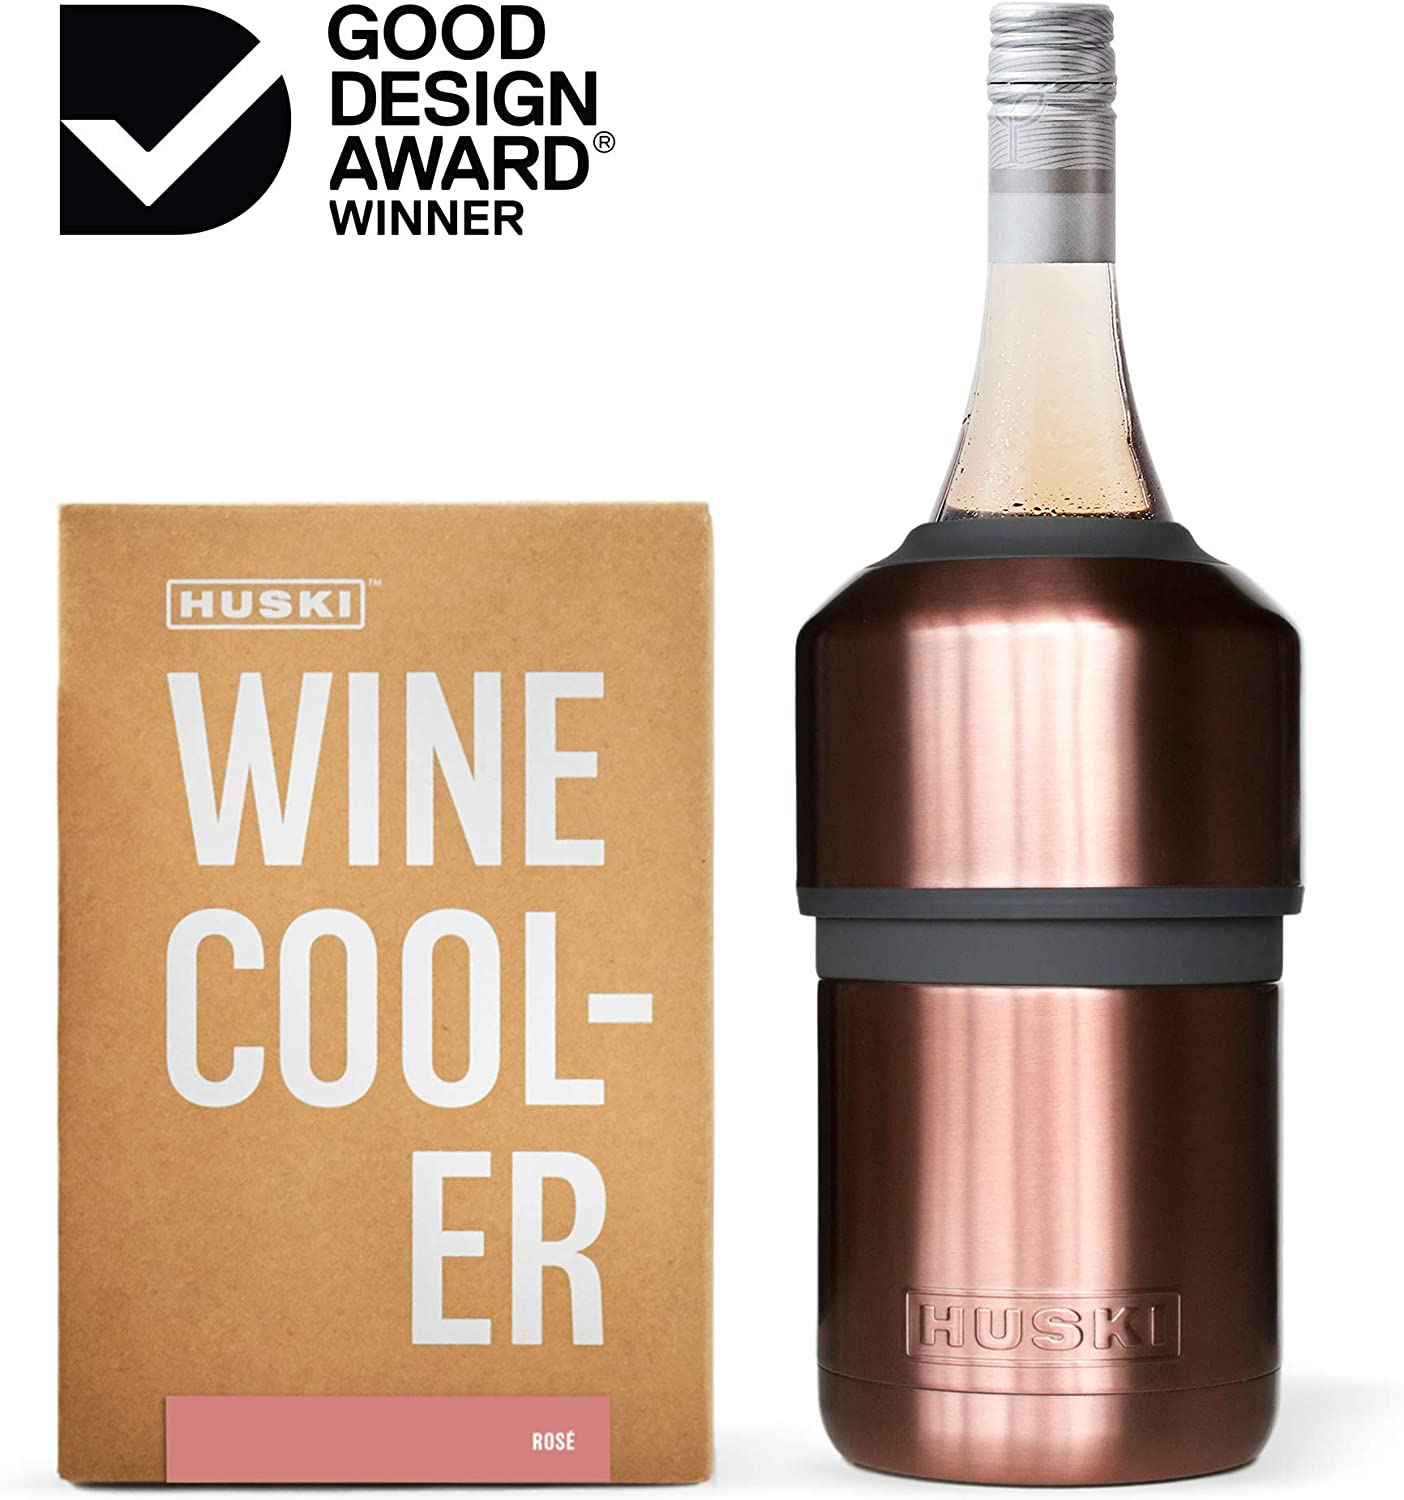 Huski Wine Cooler | Premium Iceless Wine Chiller | Keeps Wine or Champagne Bottle Cold up to 6 Hours | Award Winning Design | New Wine Accessory | Perfect Gift for Wine Lovers (Rosé)